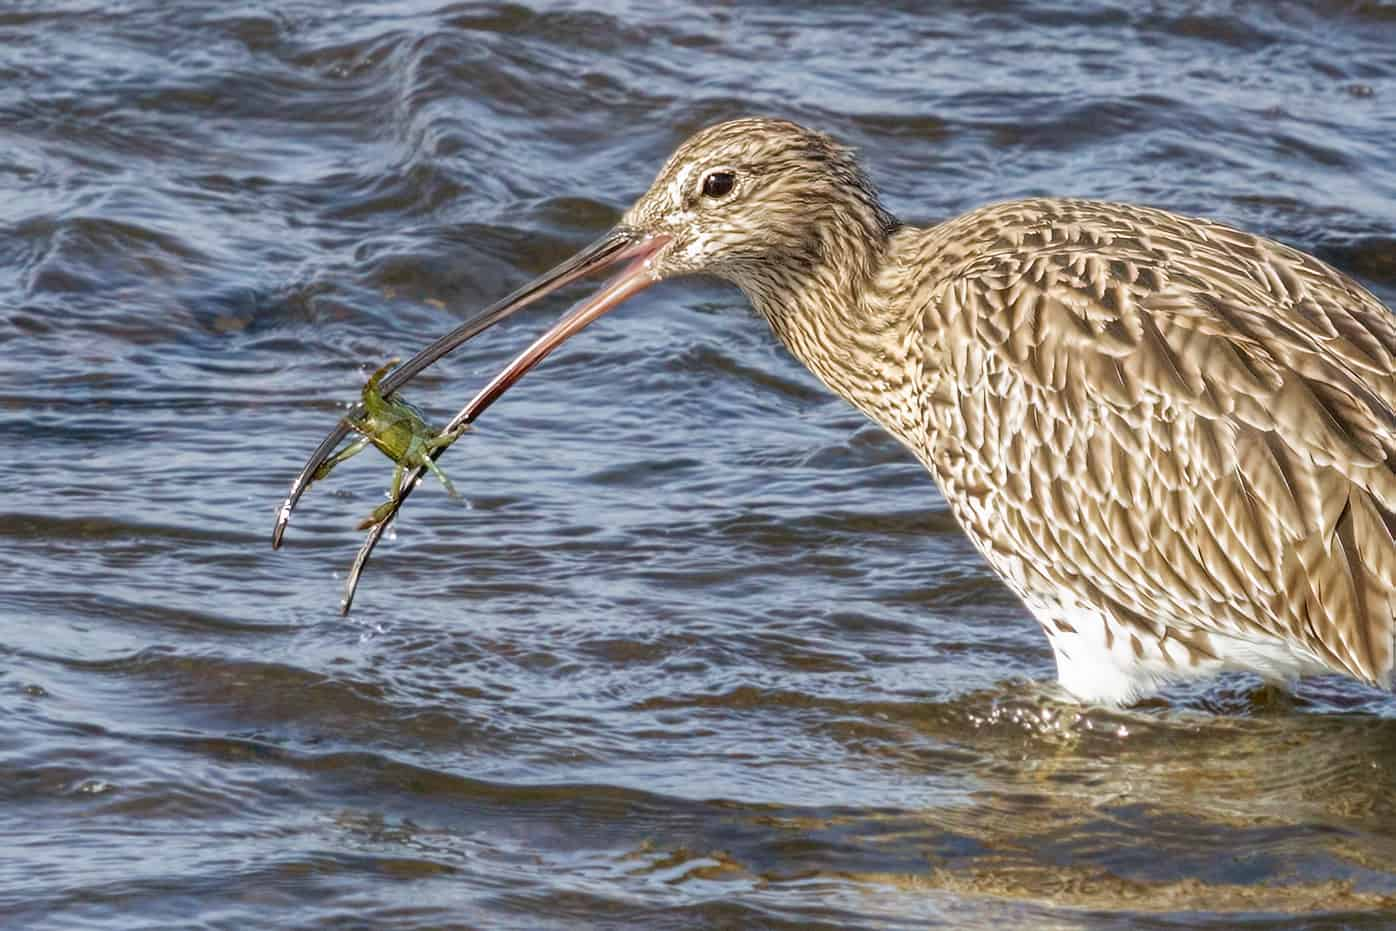 So that's Why Curlews Have Such a Long Beak!